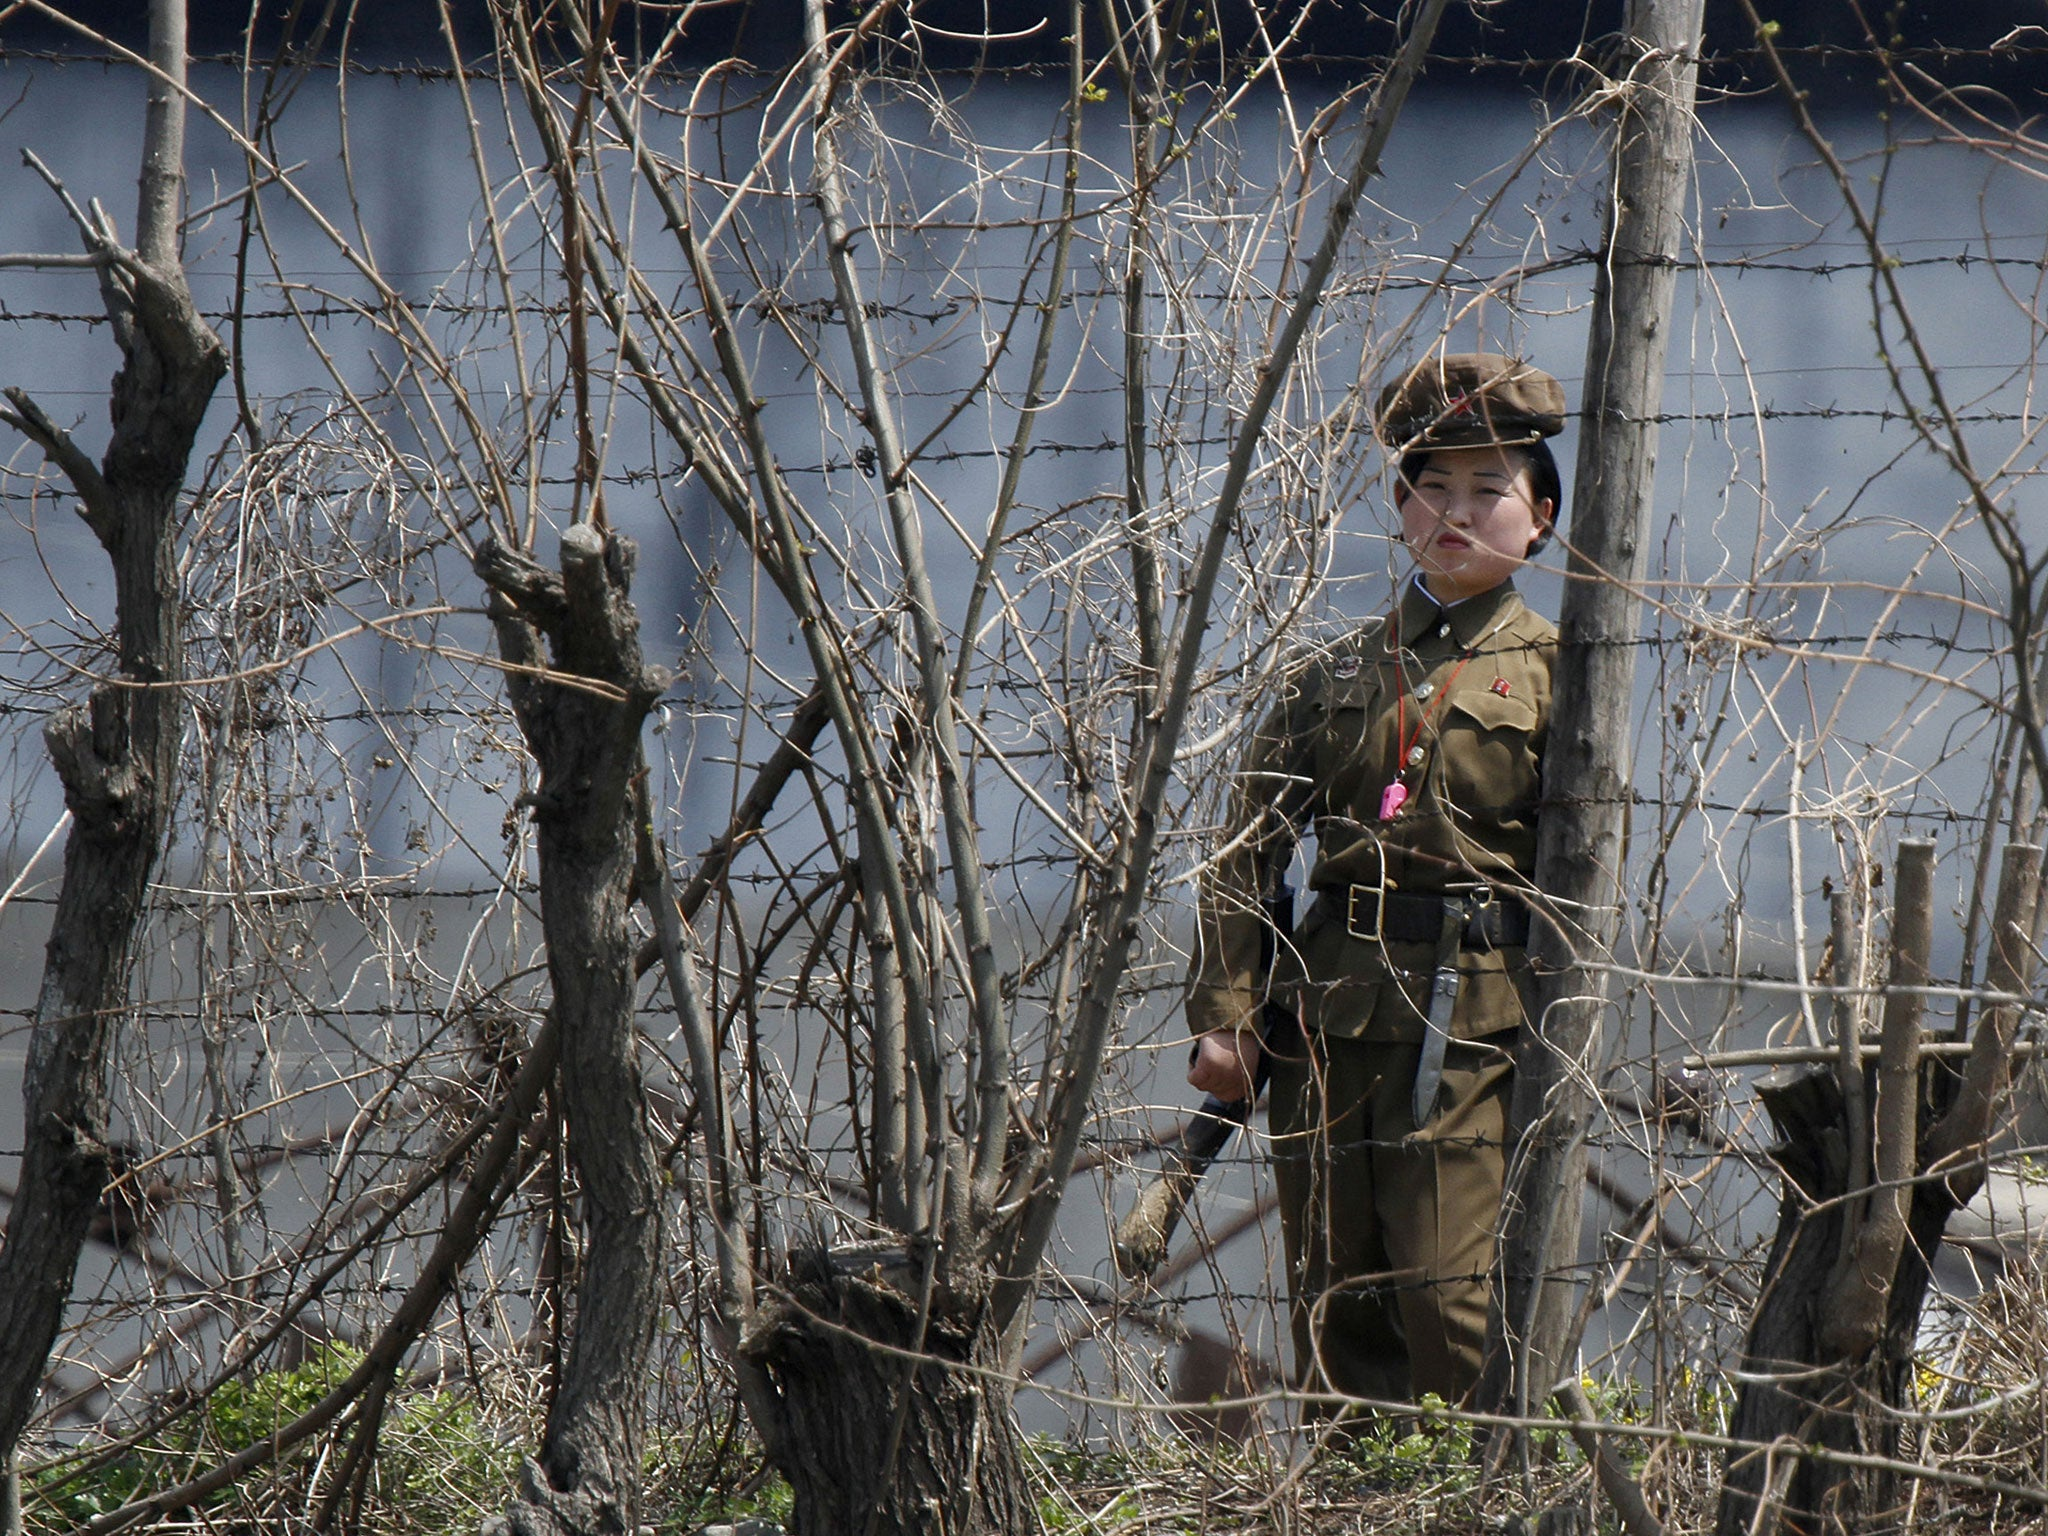 A former guard has revealed what life is really like in a North Korean prison camp